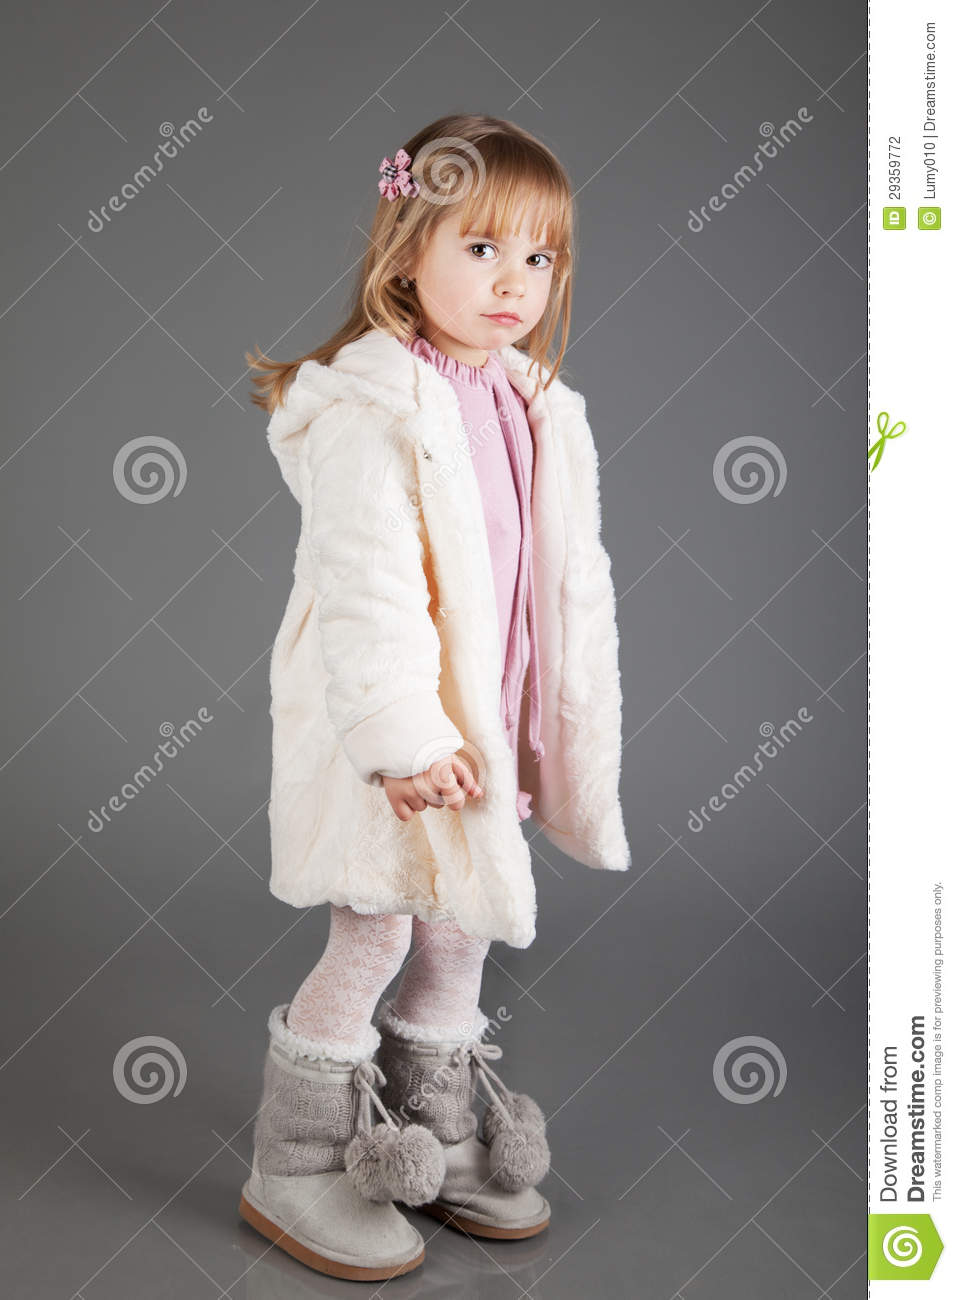 Sad Girl Crouching Stock Photos, Pictures & Royalty-Free